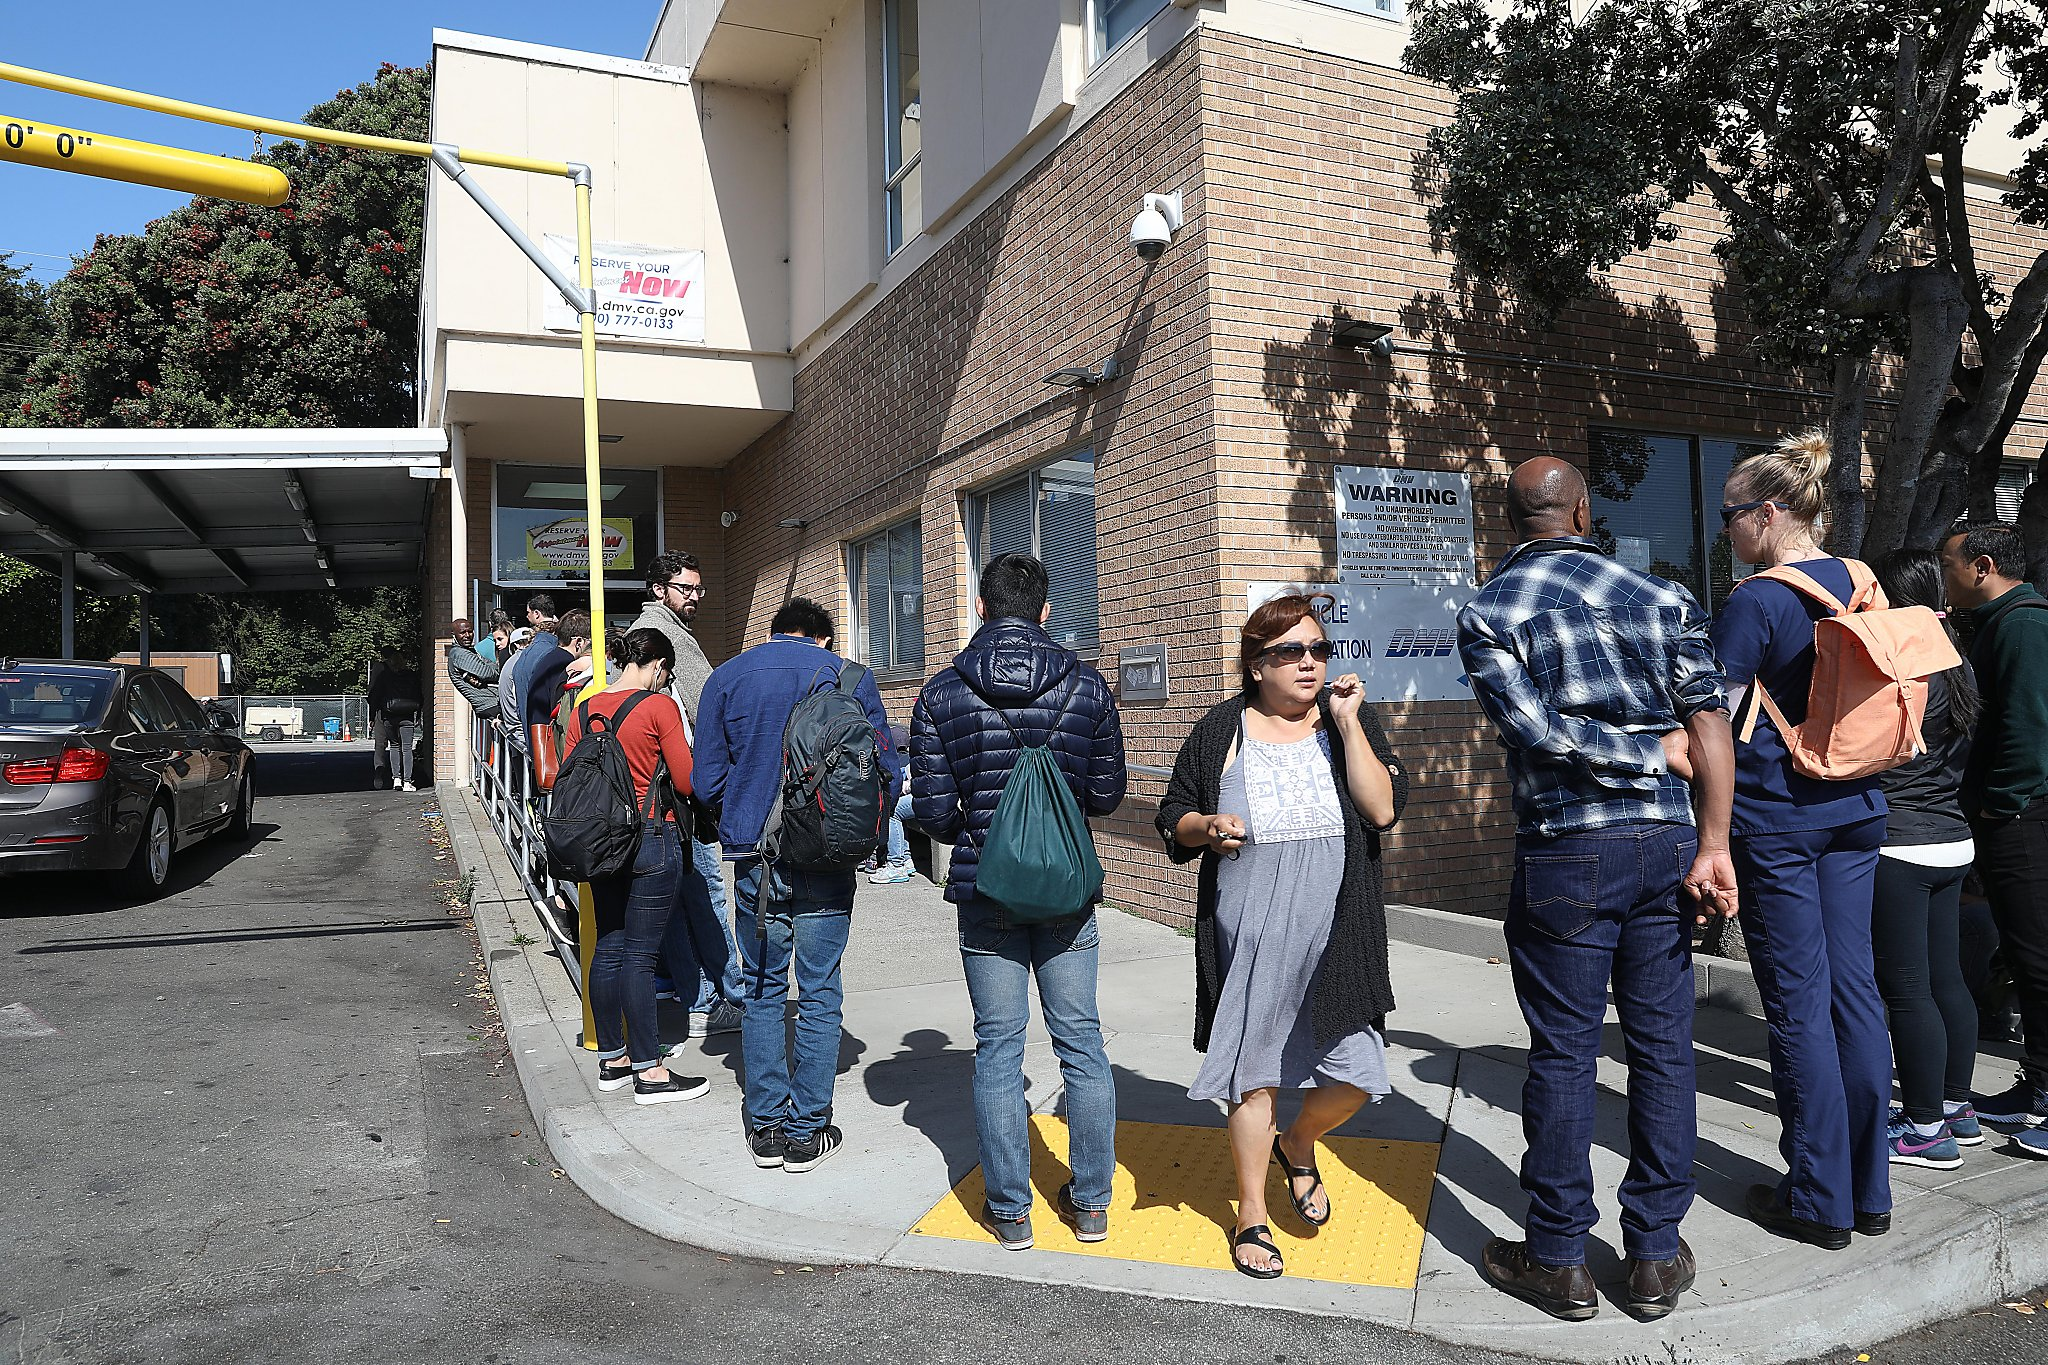 DMV investigates startup that has disrupted appointment process - SFChronicle.com